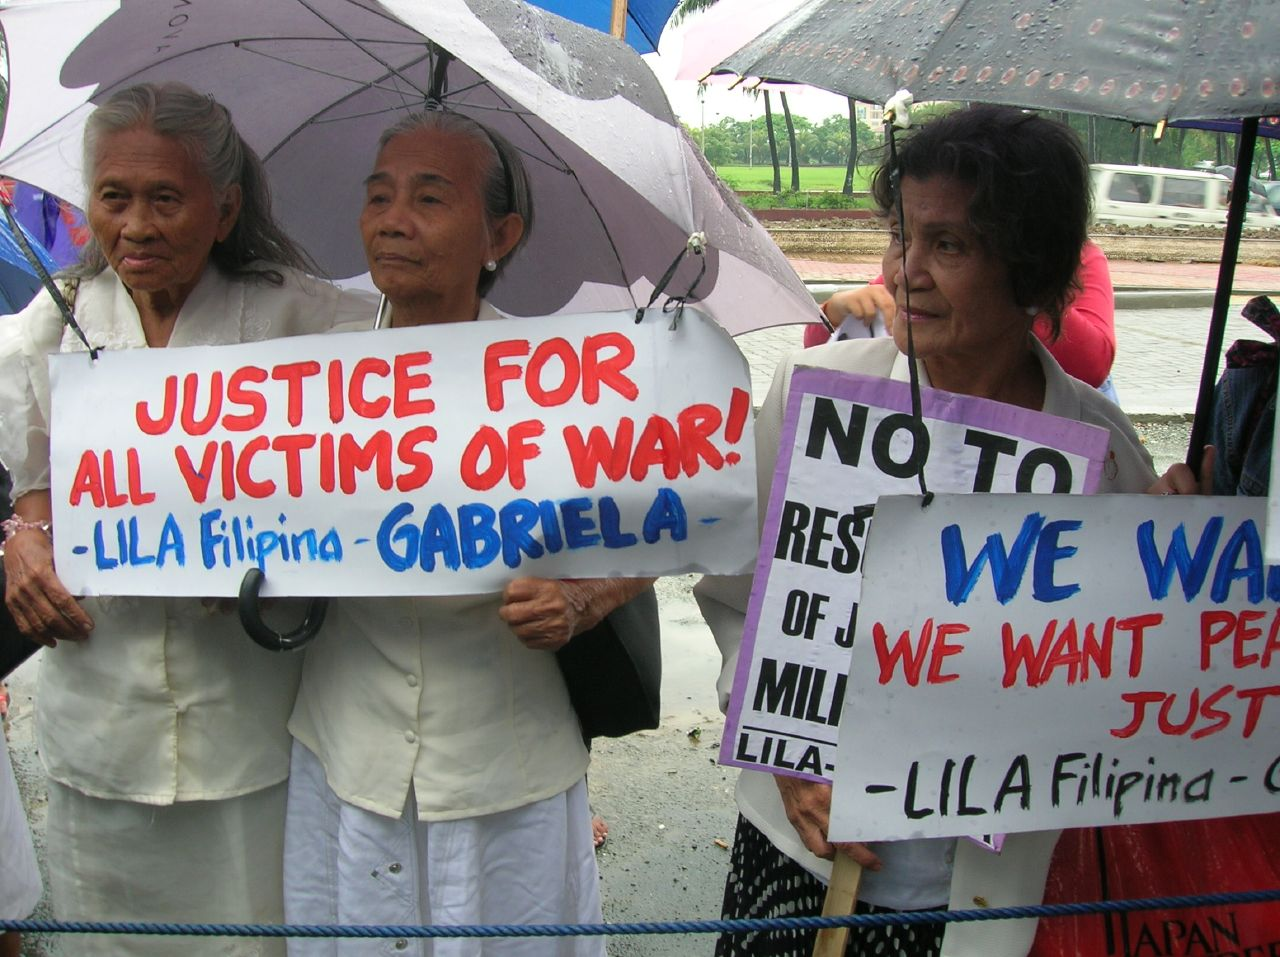 FILE PHOTO: Members of Lila-Filipina, a group composed of comfort women from the Japanese occupation era, rally infront of the Japanese Consulate in August 2006. (Photo by TQT/Flickr)